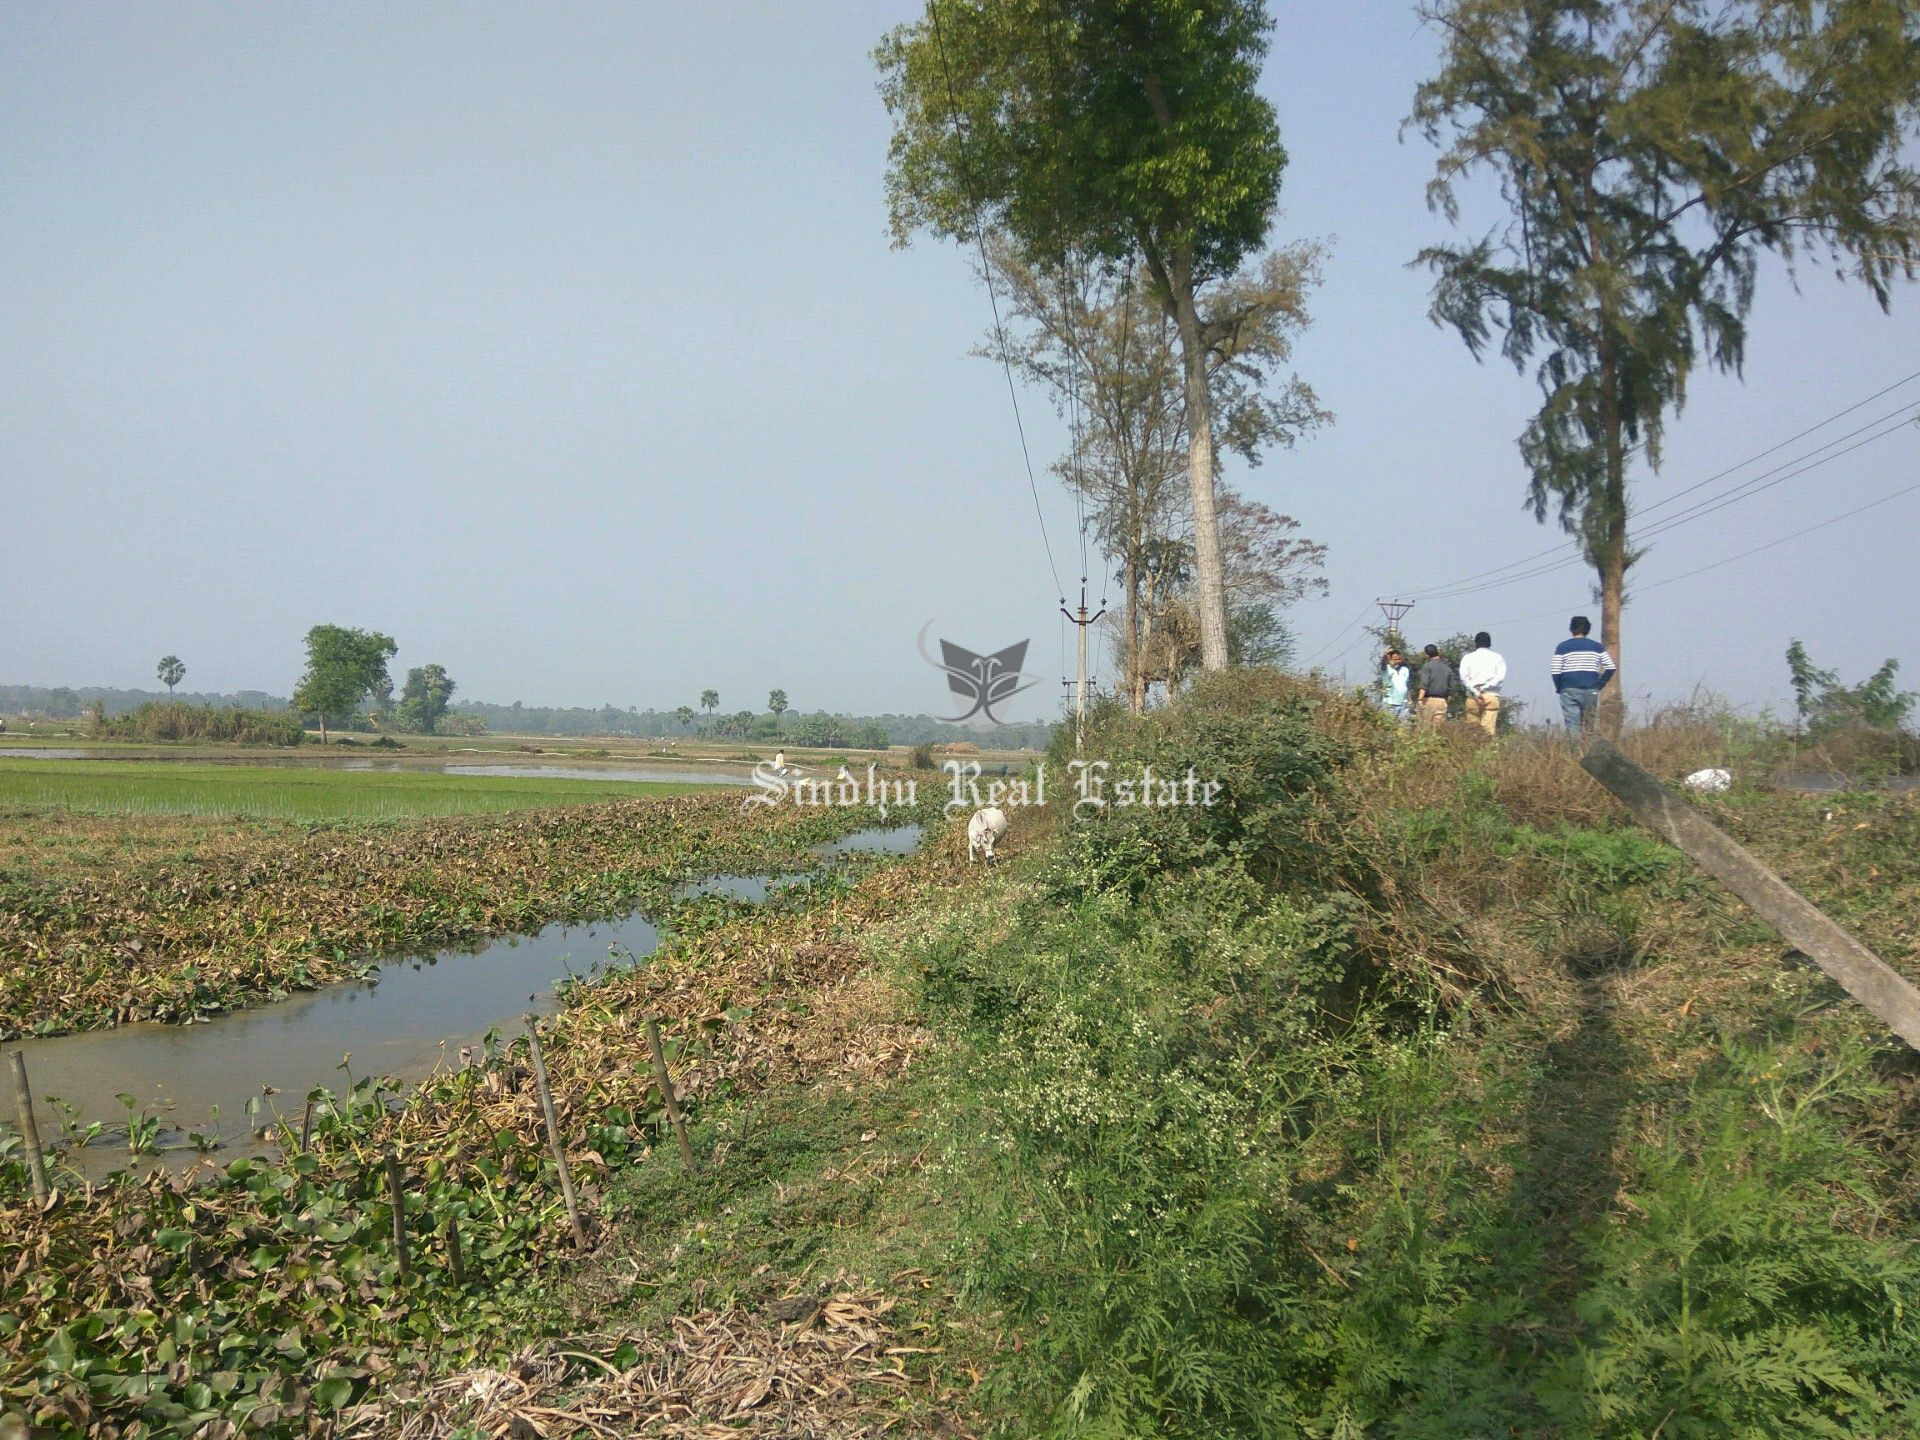 Residential Land Available in West Bengal at a Very Affordable Price